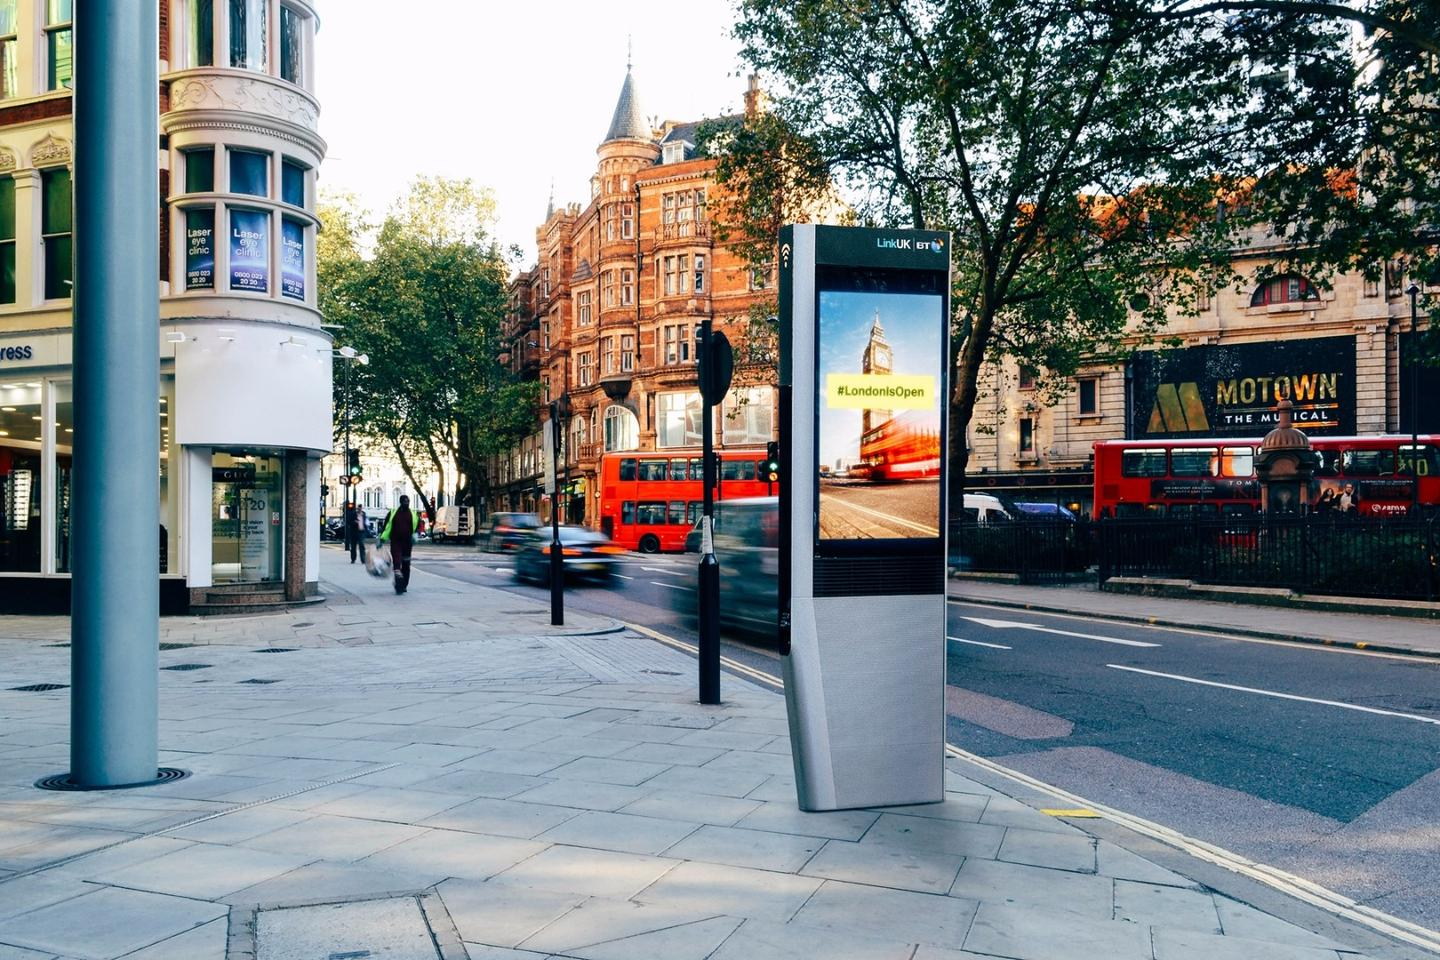 The LinkUK booths will provide Wi-Fi speeds of up to 1 Gbps, UK landline and mobile phone calls, mobile device charging and access to maps, directions and local services